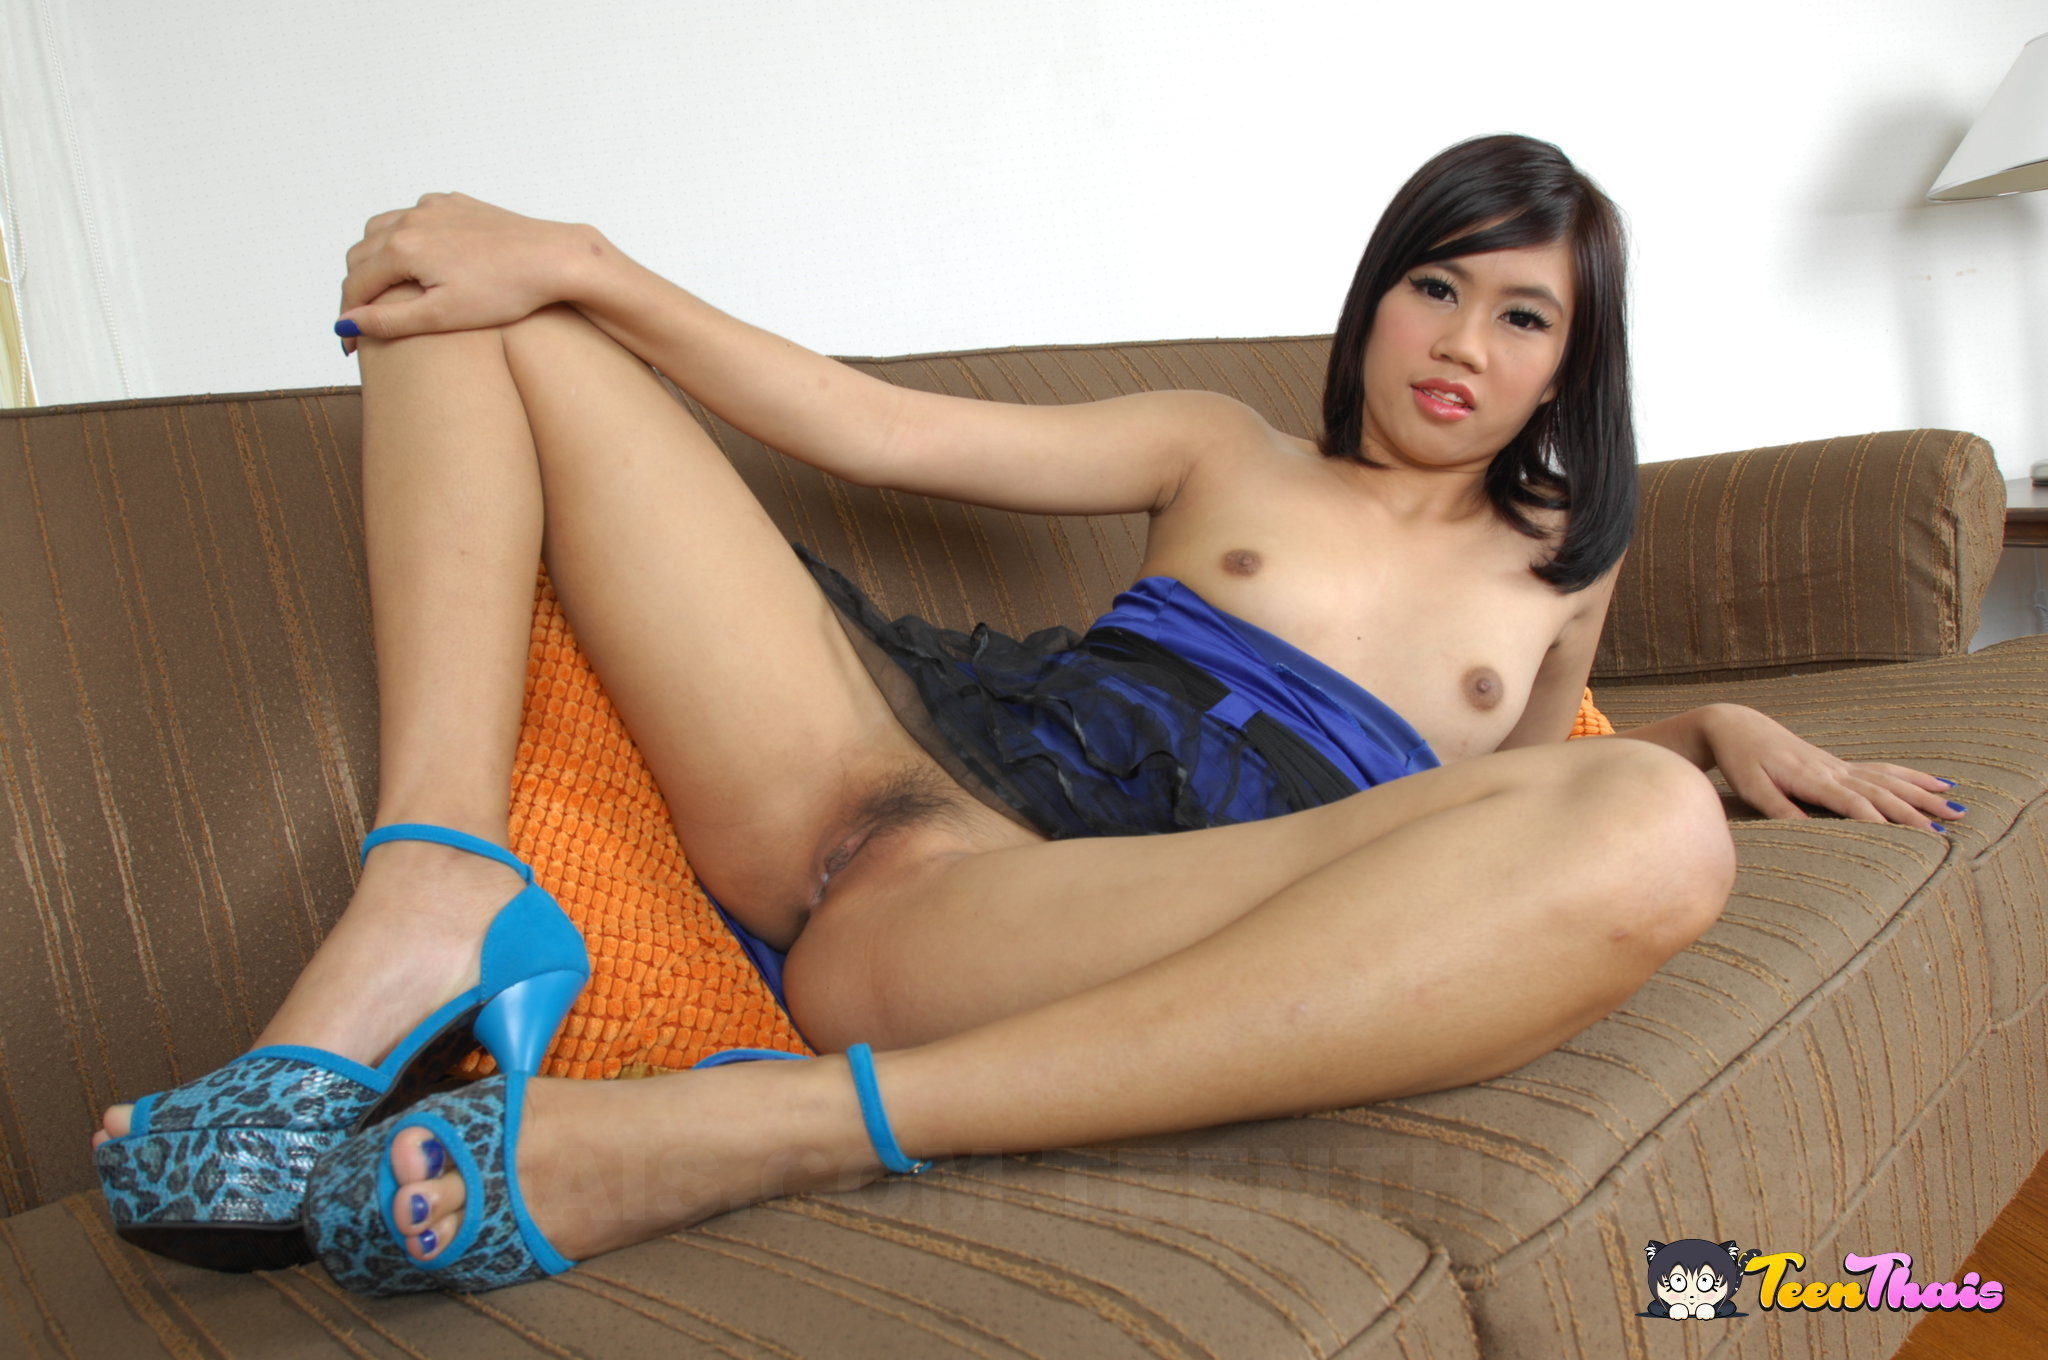 sex heel Teen picture high